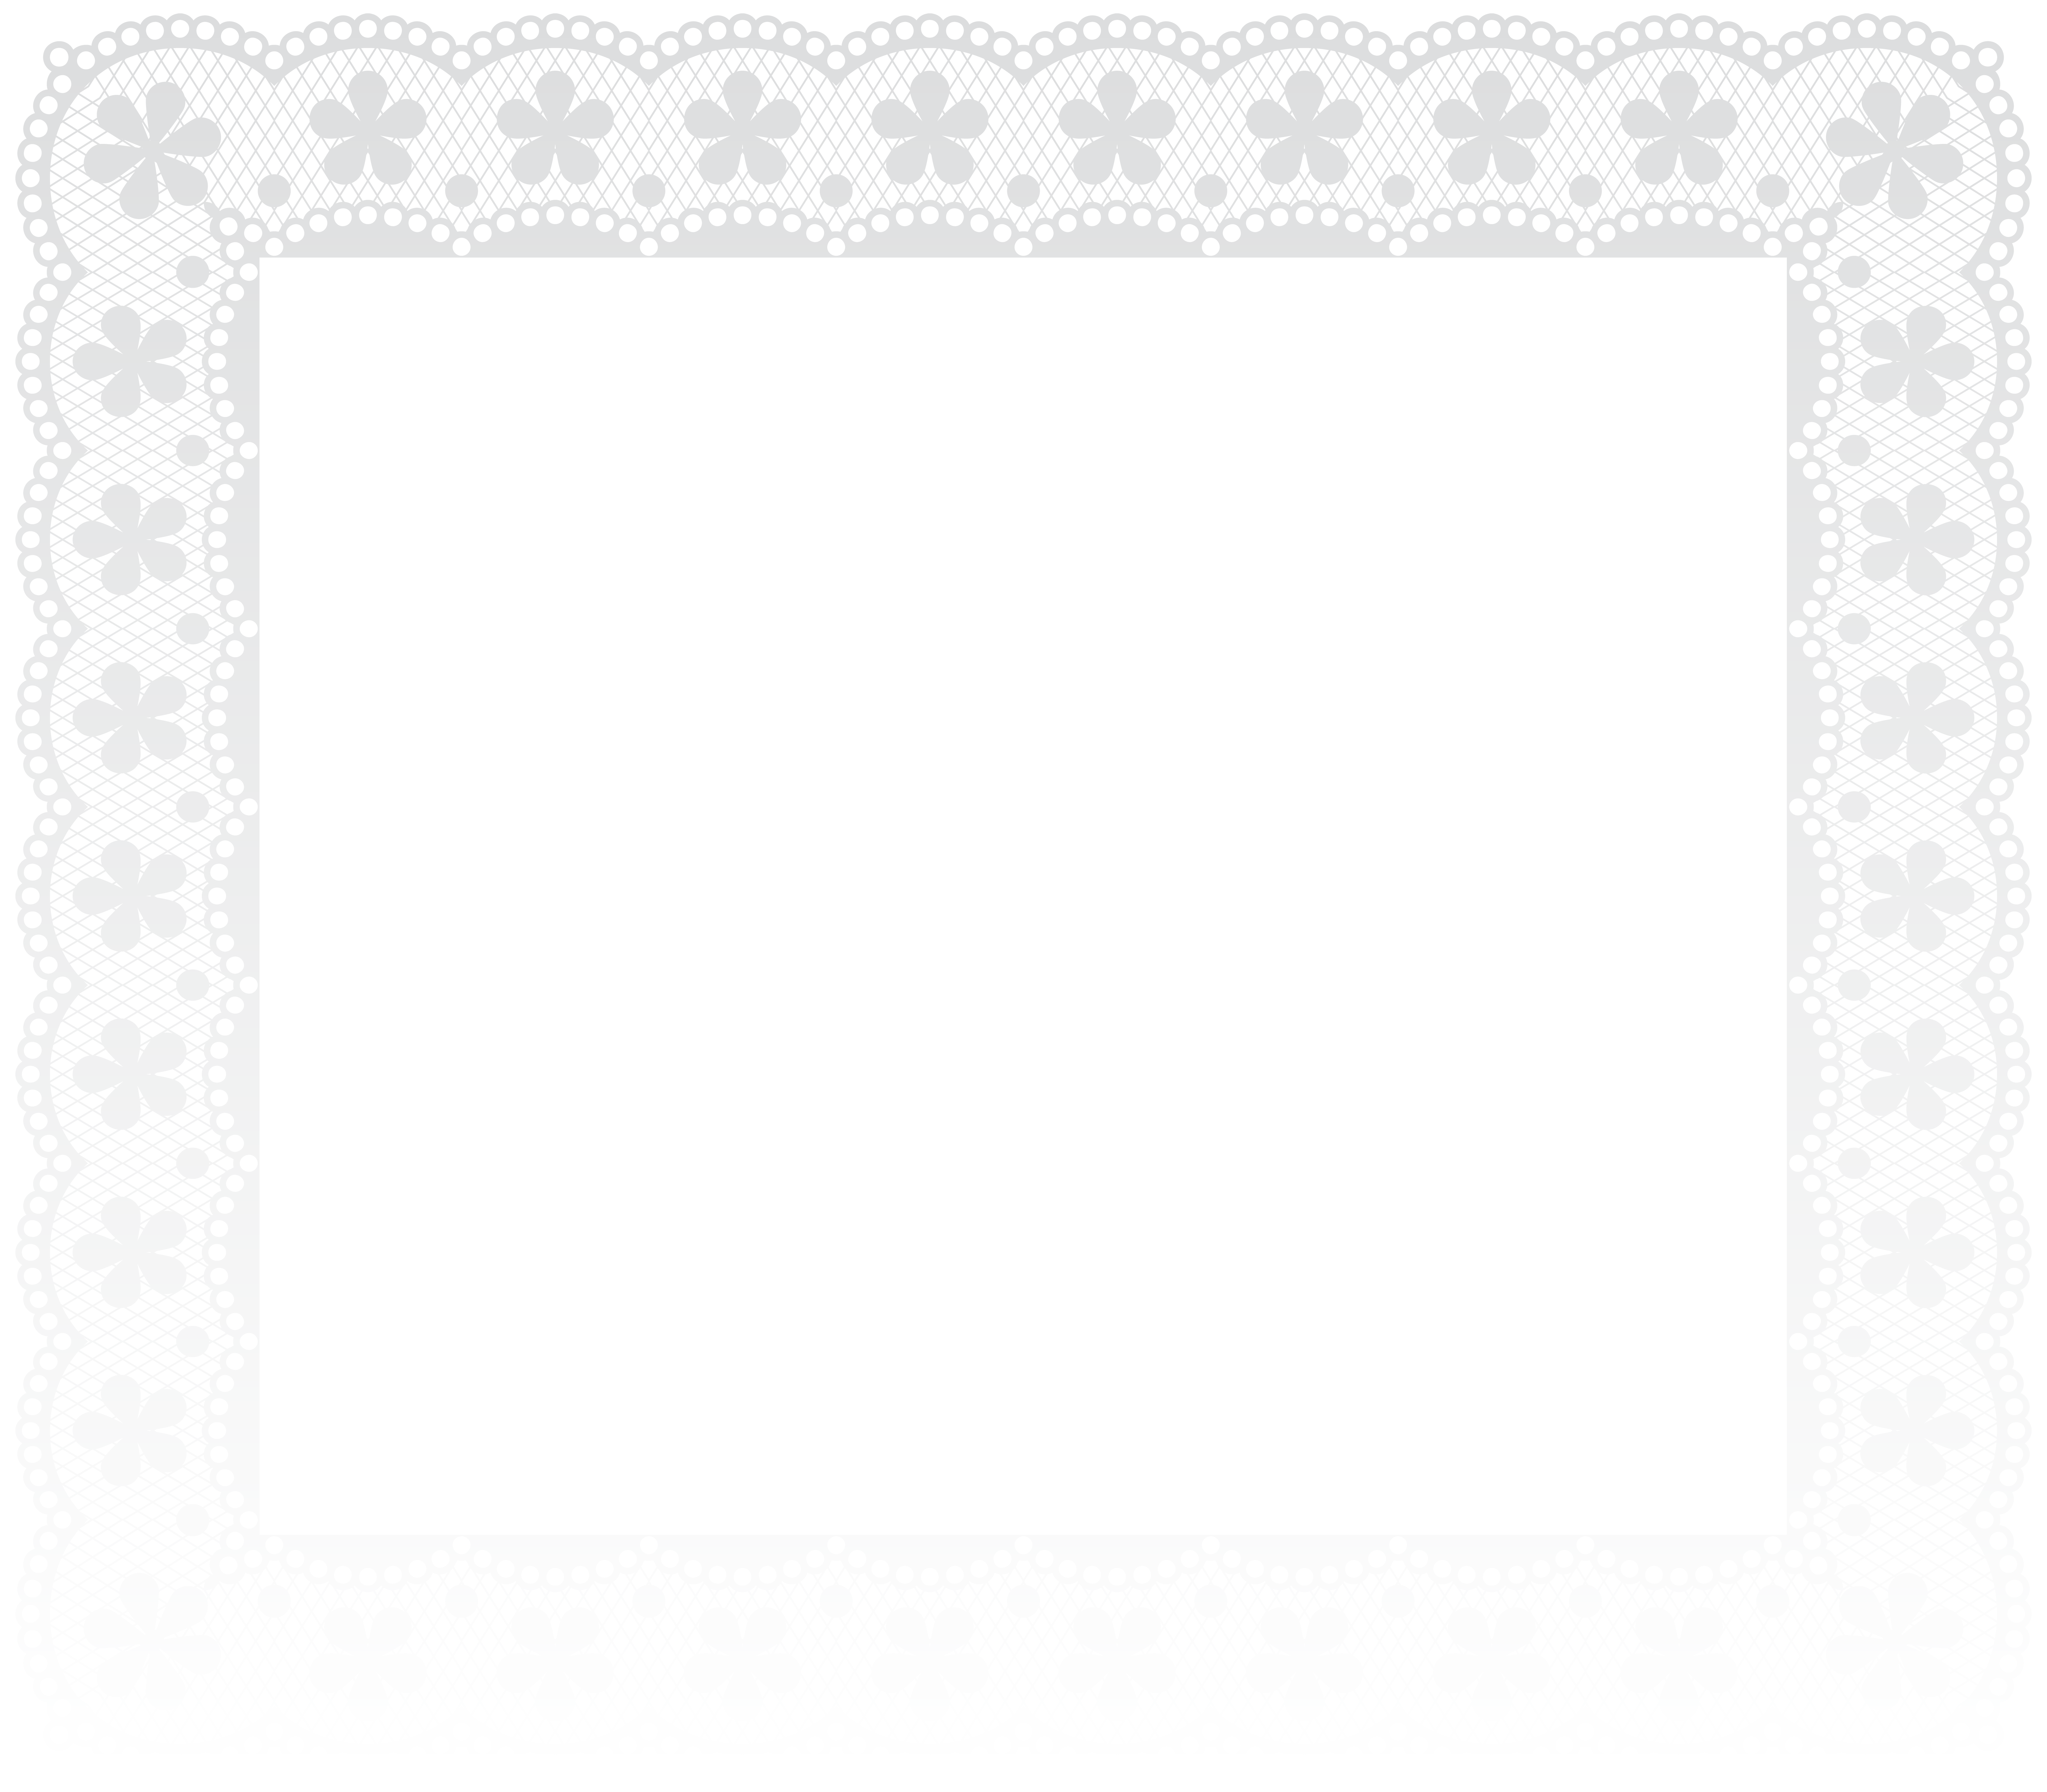 Lace border frame png. Clip art image gallery